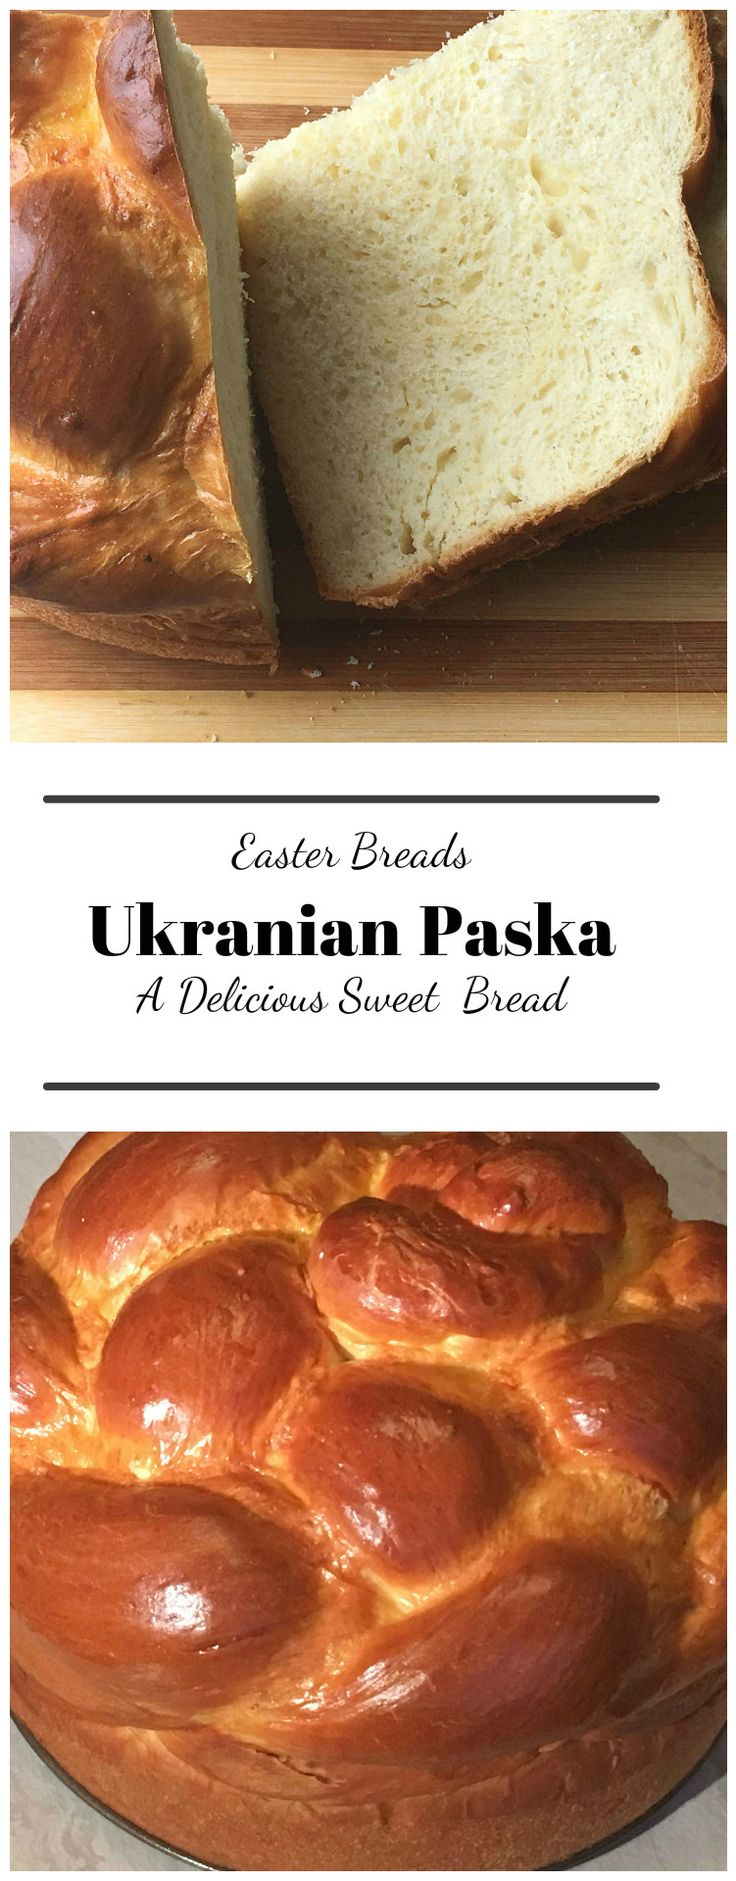 Ukranian Paska – An enriched sweet Easter bread. This lovely yeast bread has eggs , butter and sugar to make it soft and sweet. The festive decorative shaping adds a festive touch to it as well.